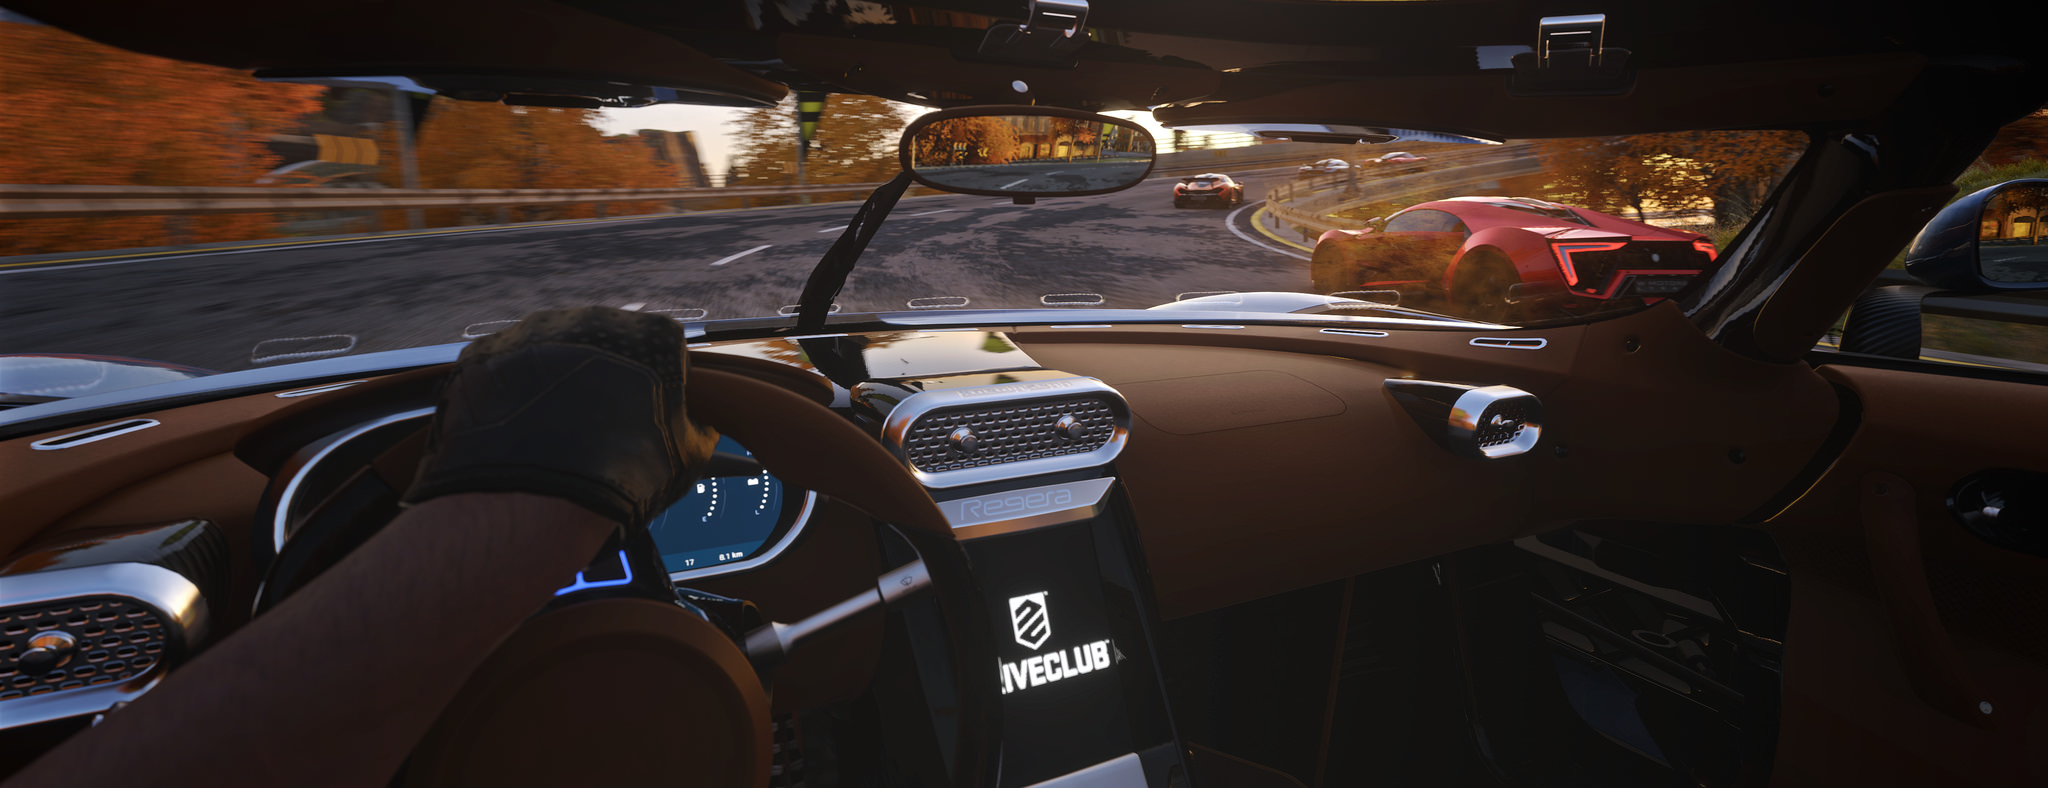 DriveClub VR interior screenshot